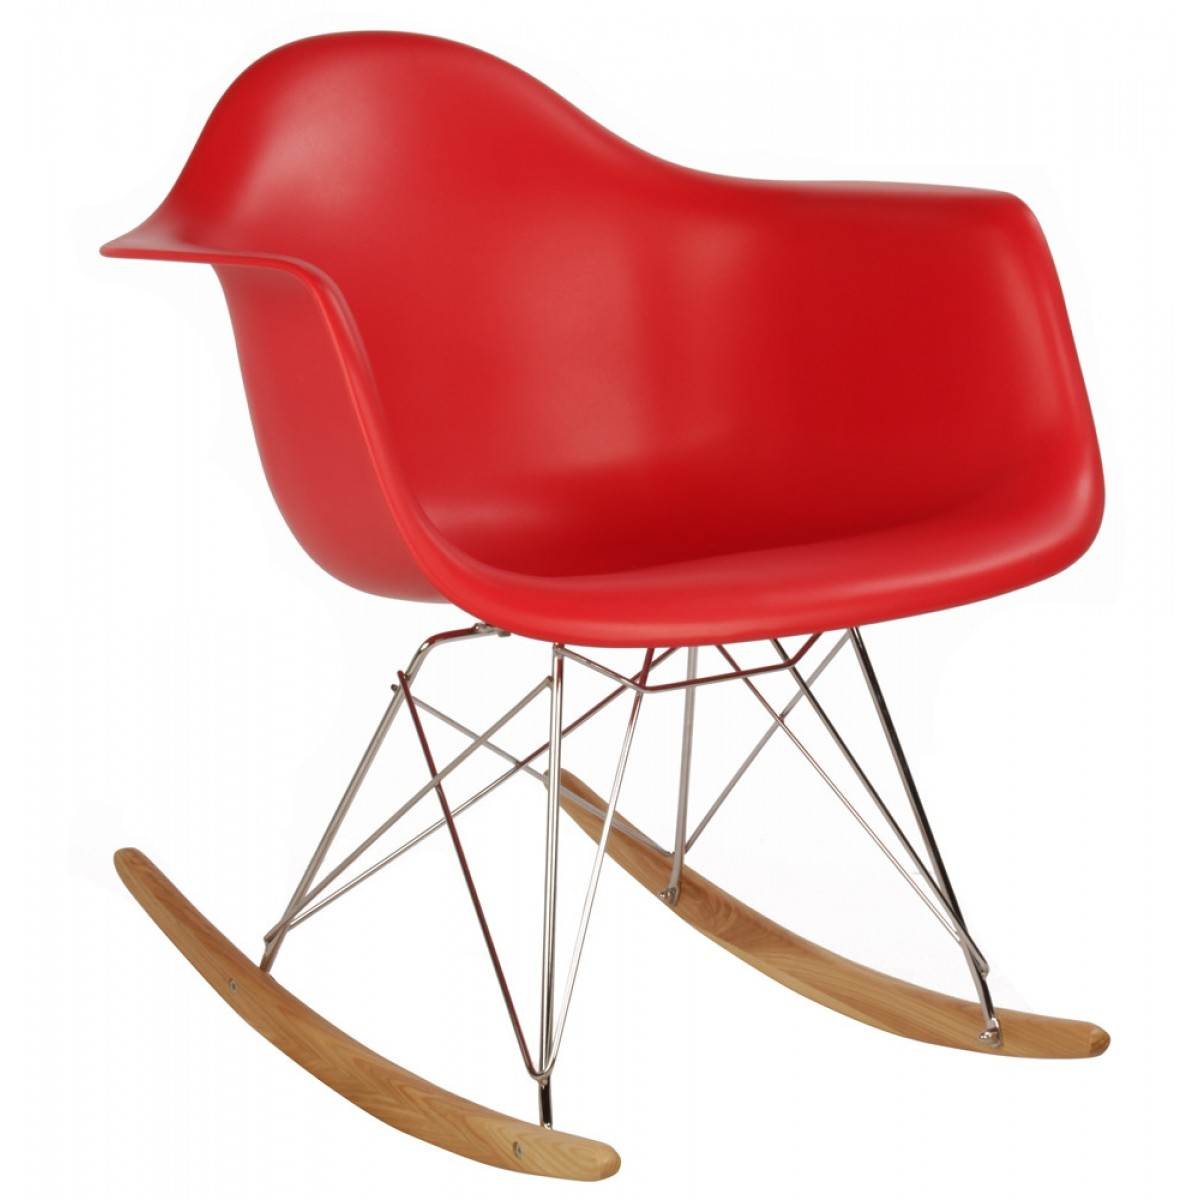 plastic chairs with steel legs office chair dwg eames style rar molded red rocking